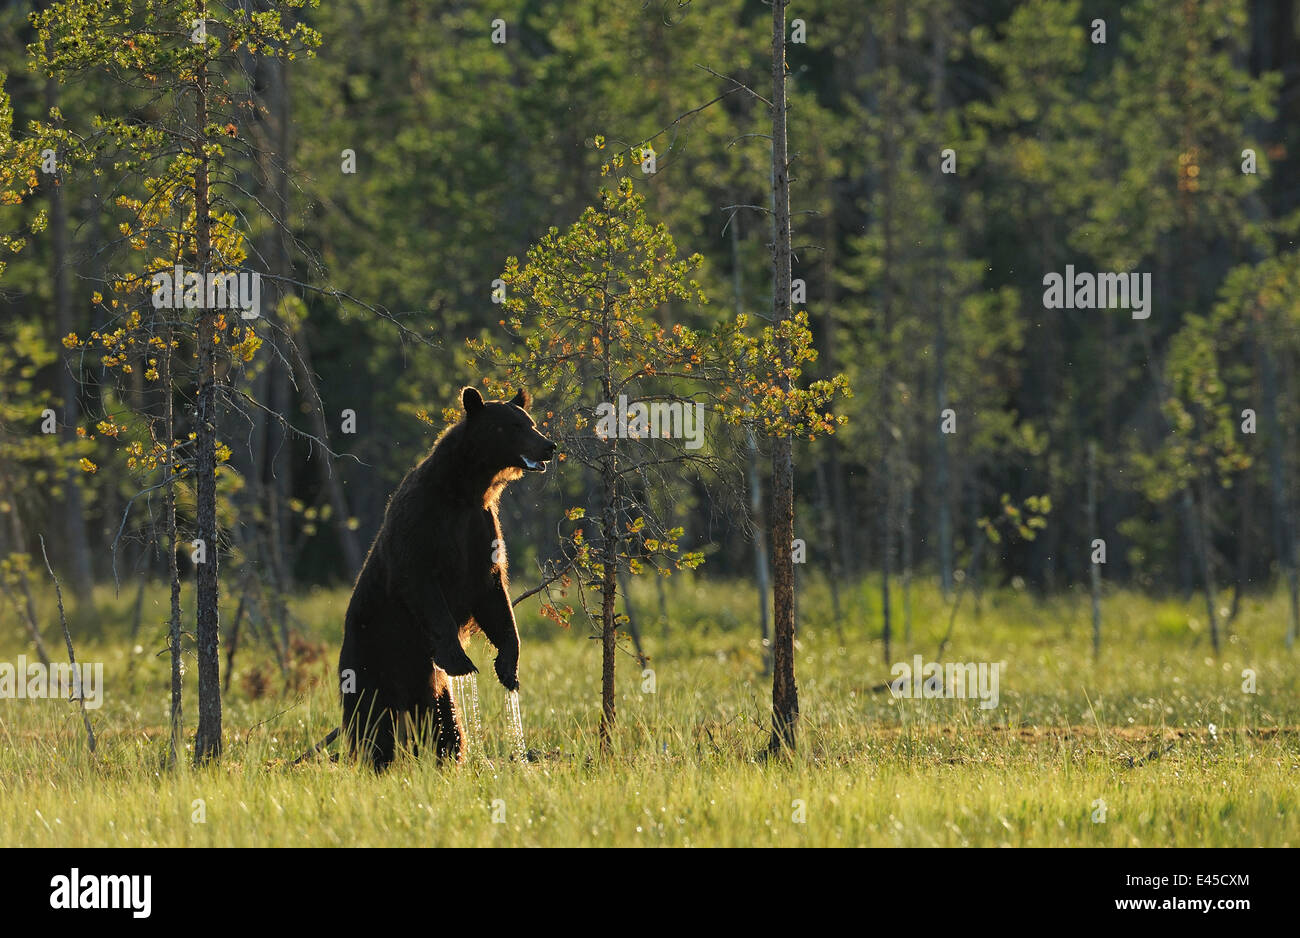 Eurasian brown bear (Ursus arctos) standing with water dripping from its paws, Kuhmo, Finland, July 2008 - Stock Image